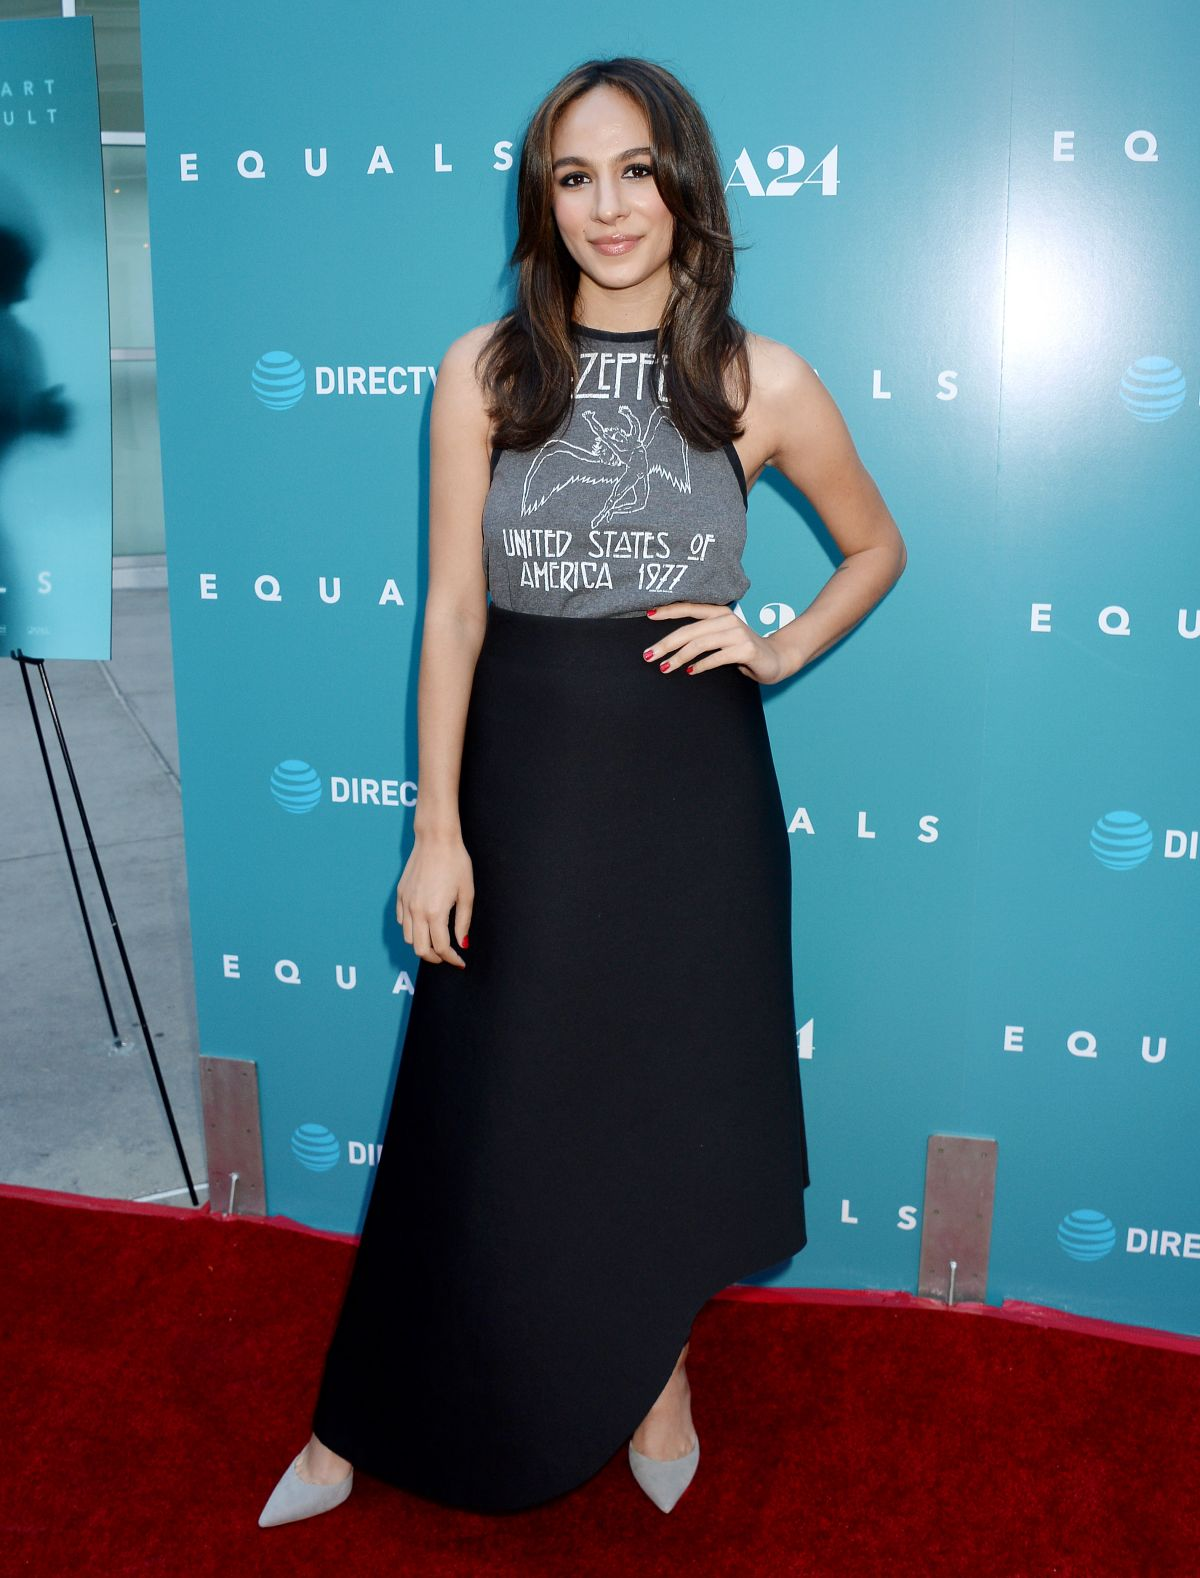 HQ Photos of Aurora Perrineau At Equals Premiere In Hollywood